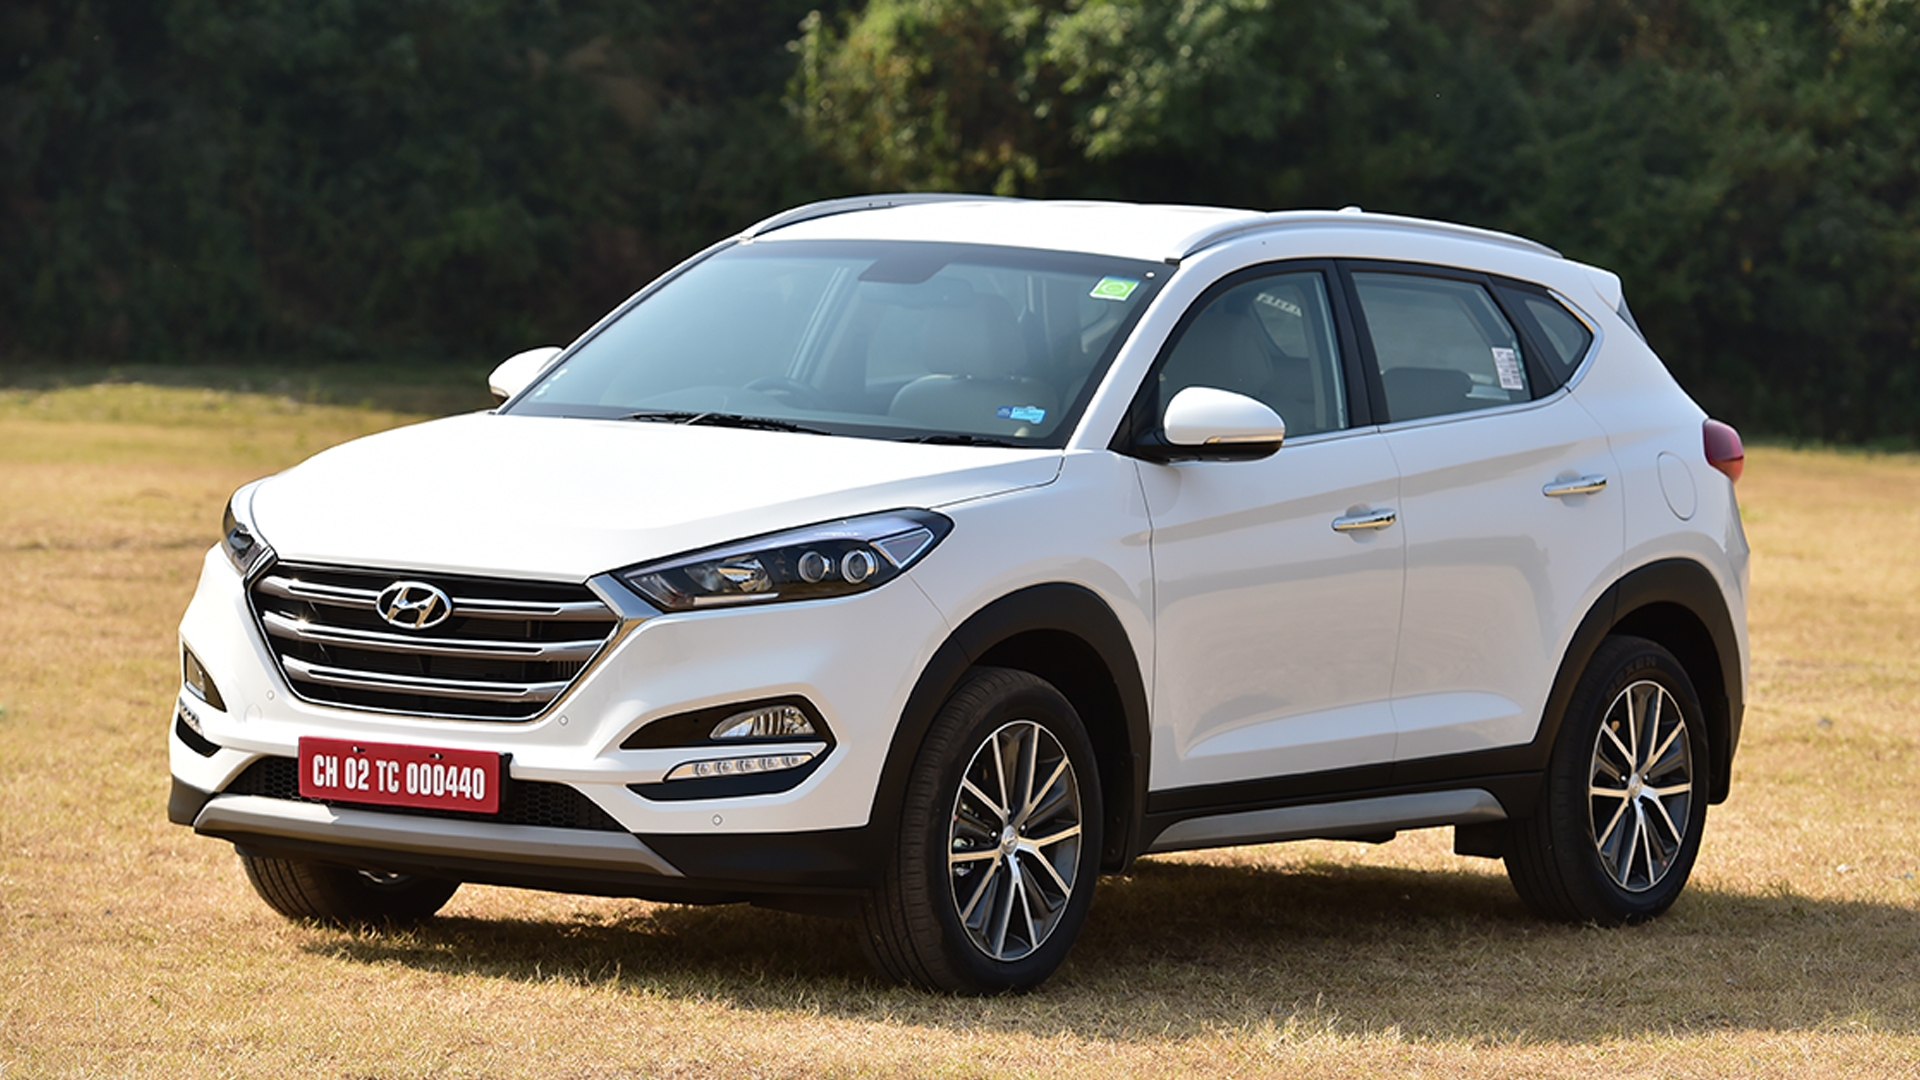 Hyundai Tucson 2017 - Price, Mileage, Reviews ...